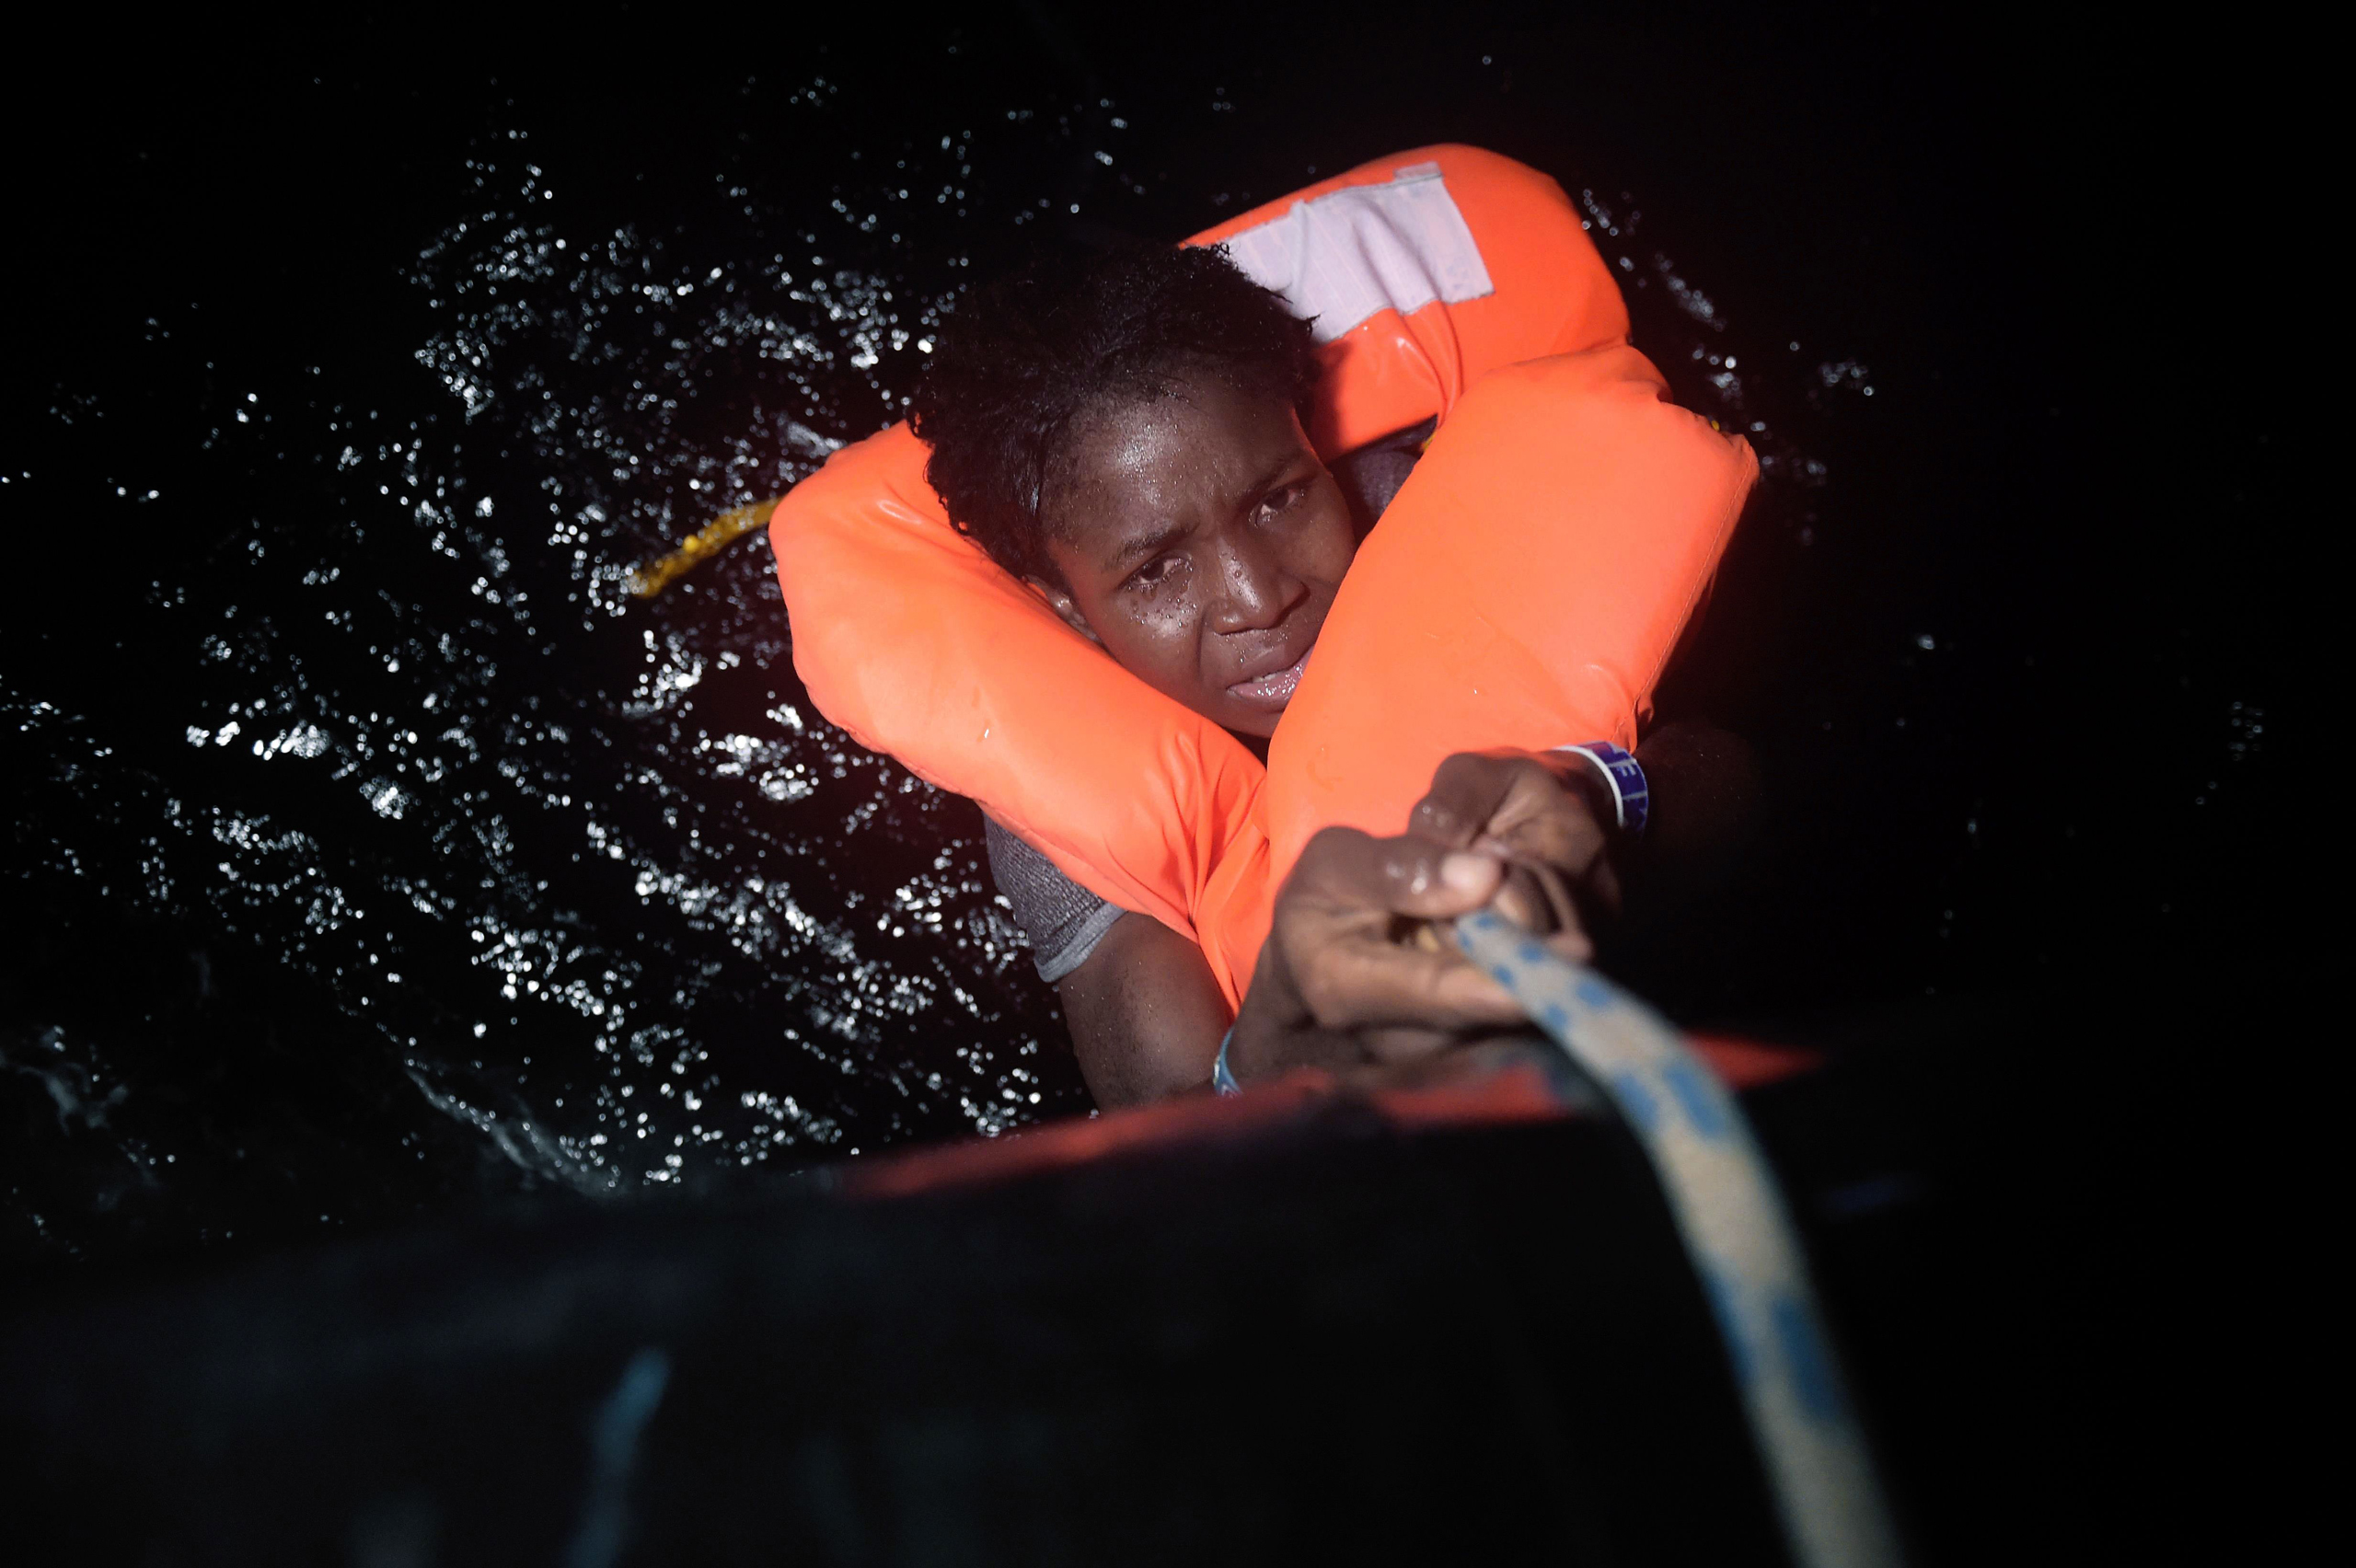 A migrant holds onto a rope during a rescue operation some eight nautical miles off Libya's Mediterranean coastline on Oct. 12, 2016.